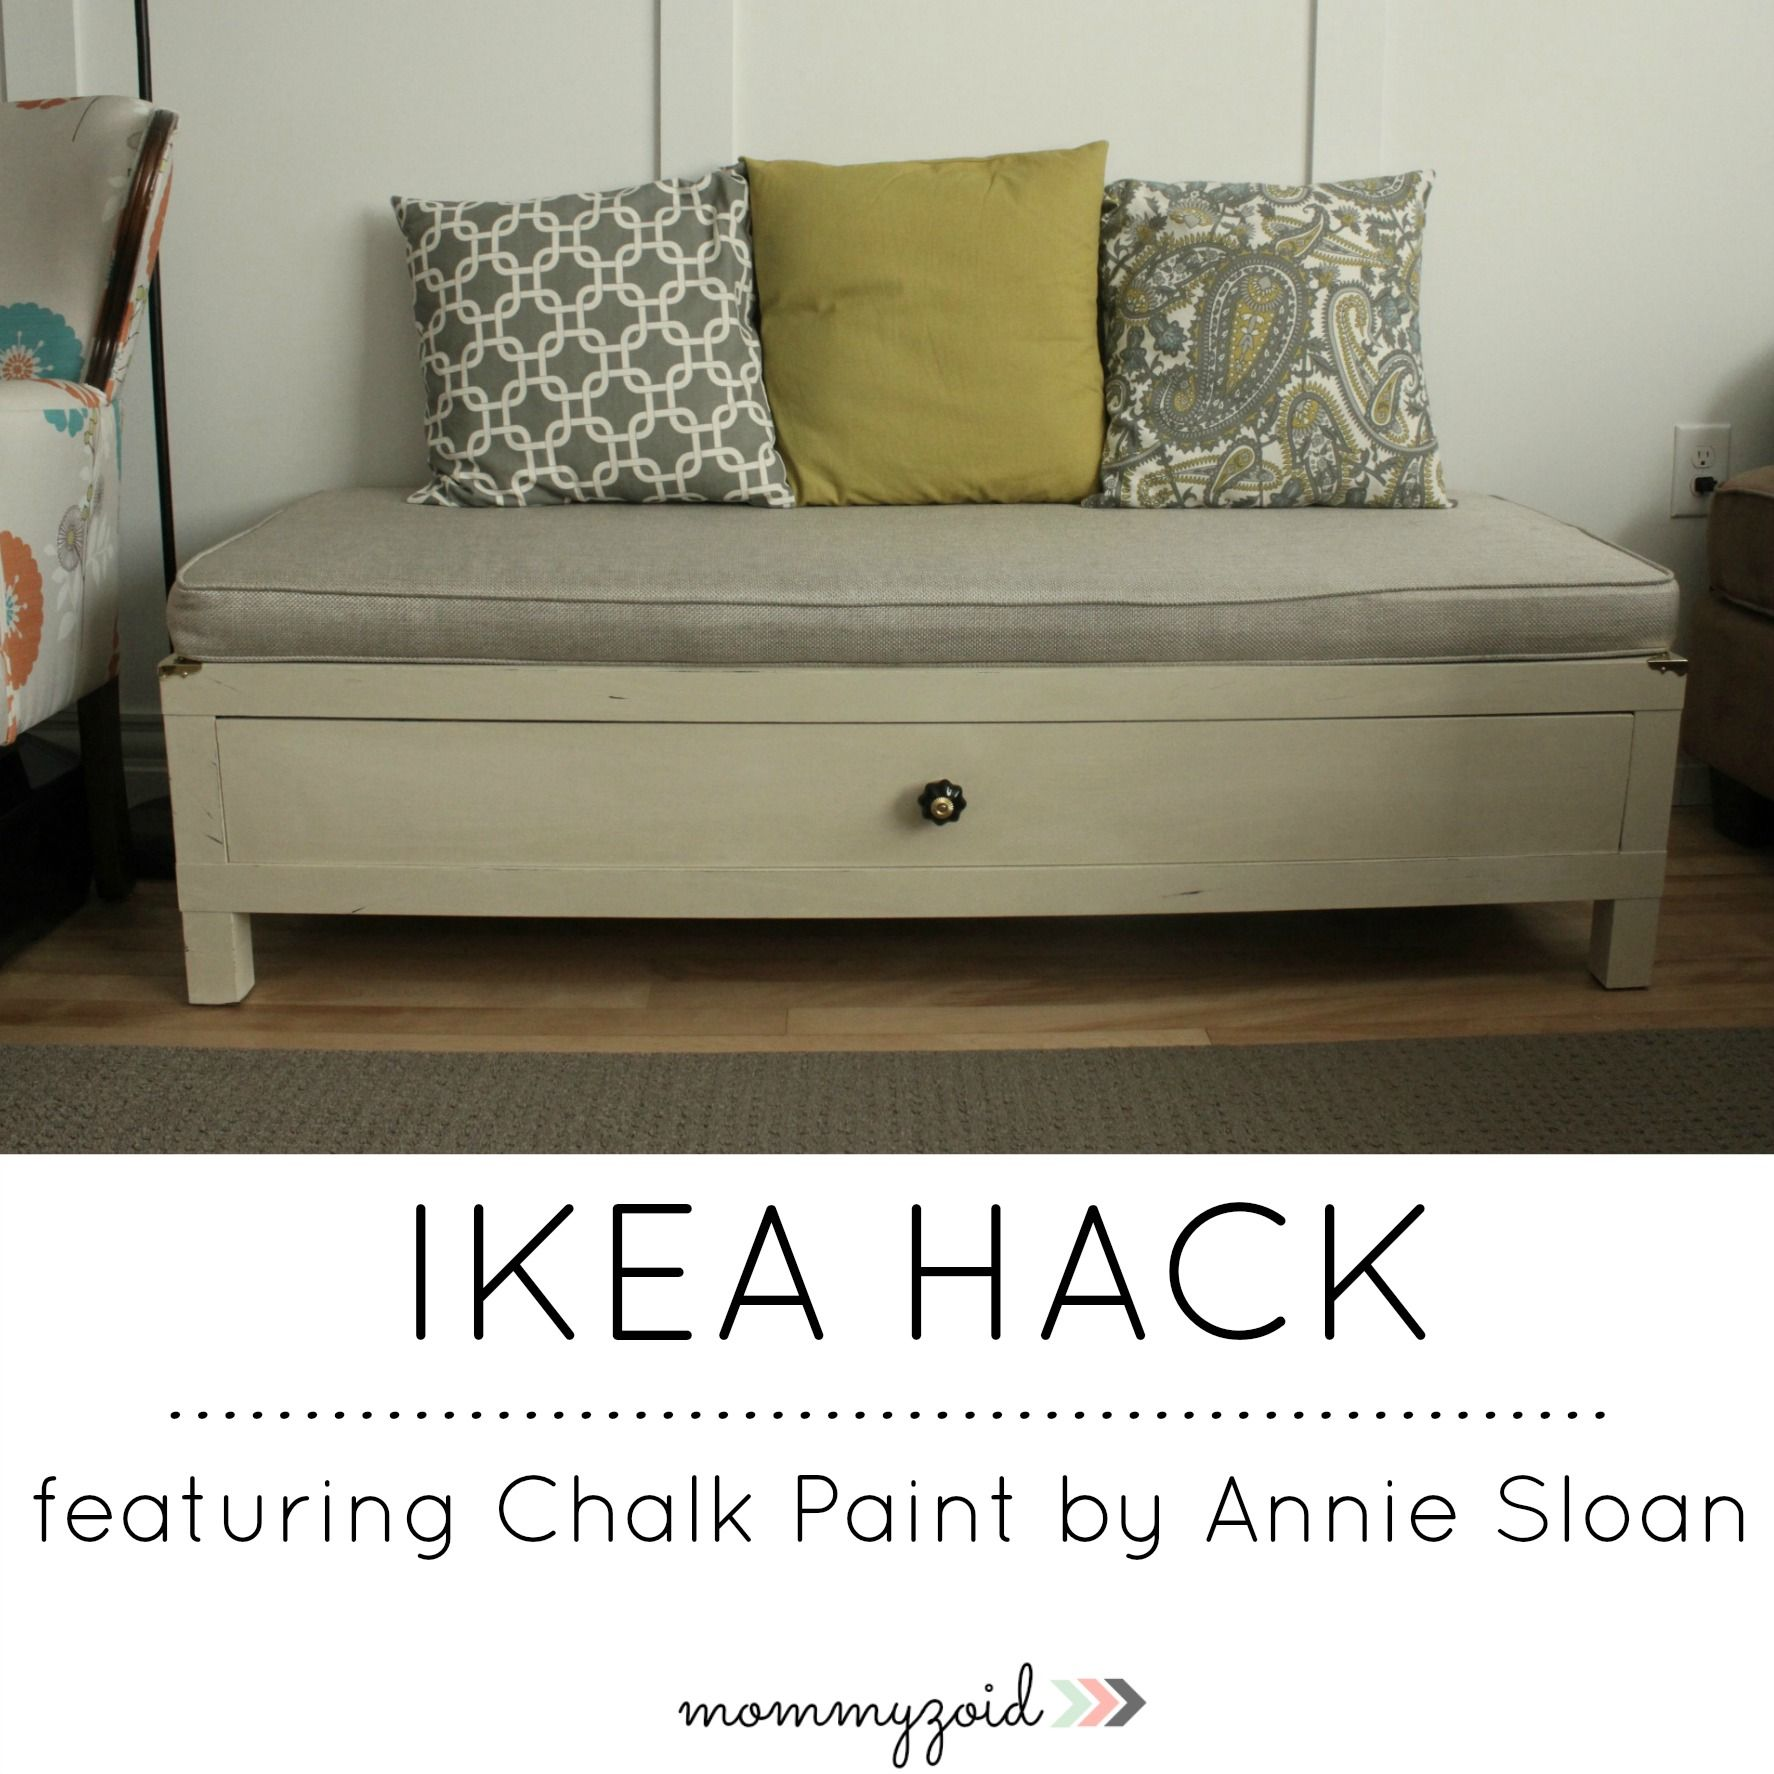 ikea hack featuring chalk paint by annie sloan ikea hack annie sloan and annie. Black Bedroom Furniture Sets. Home Design Ideas